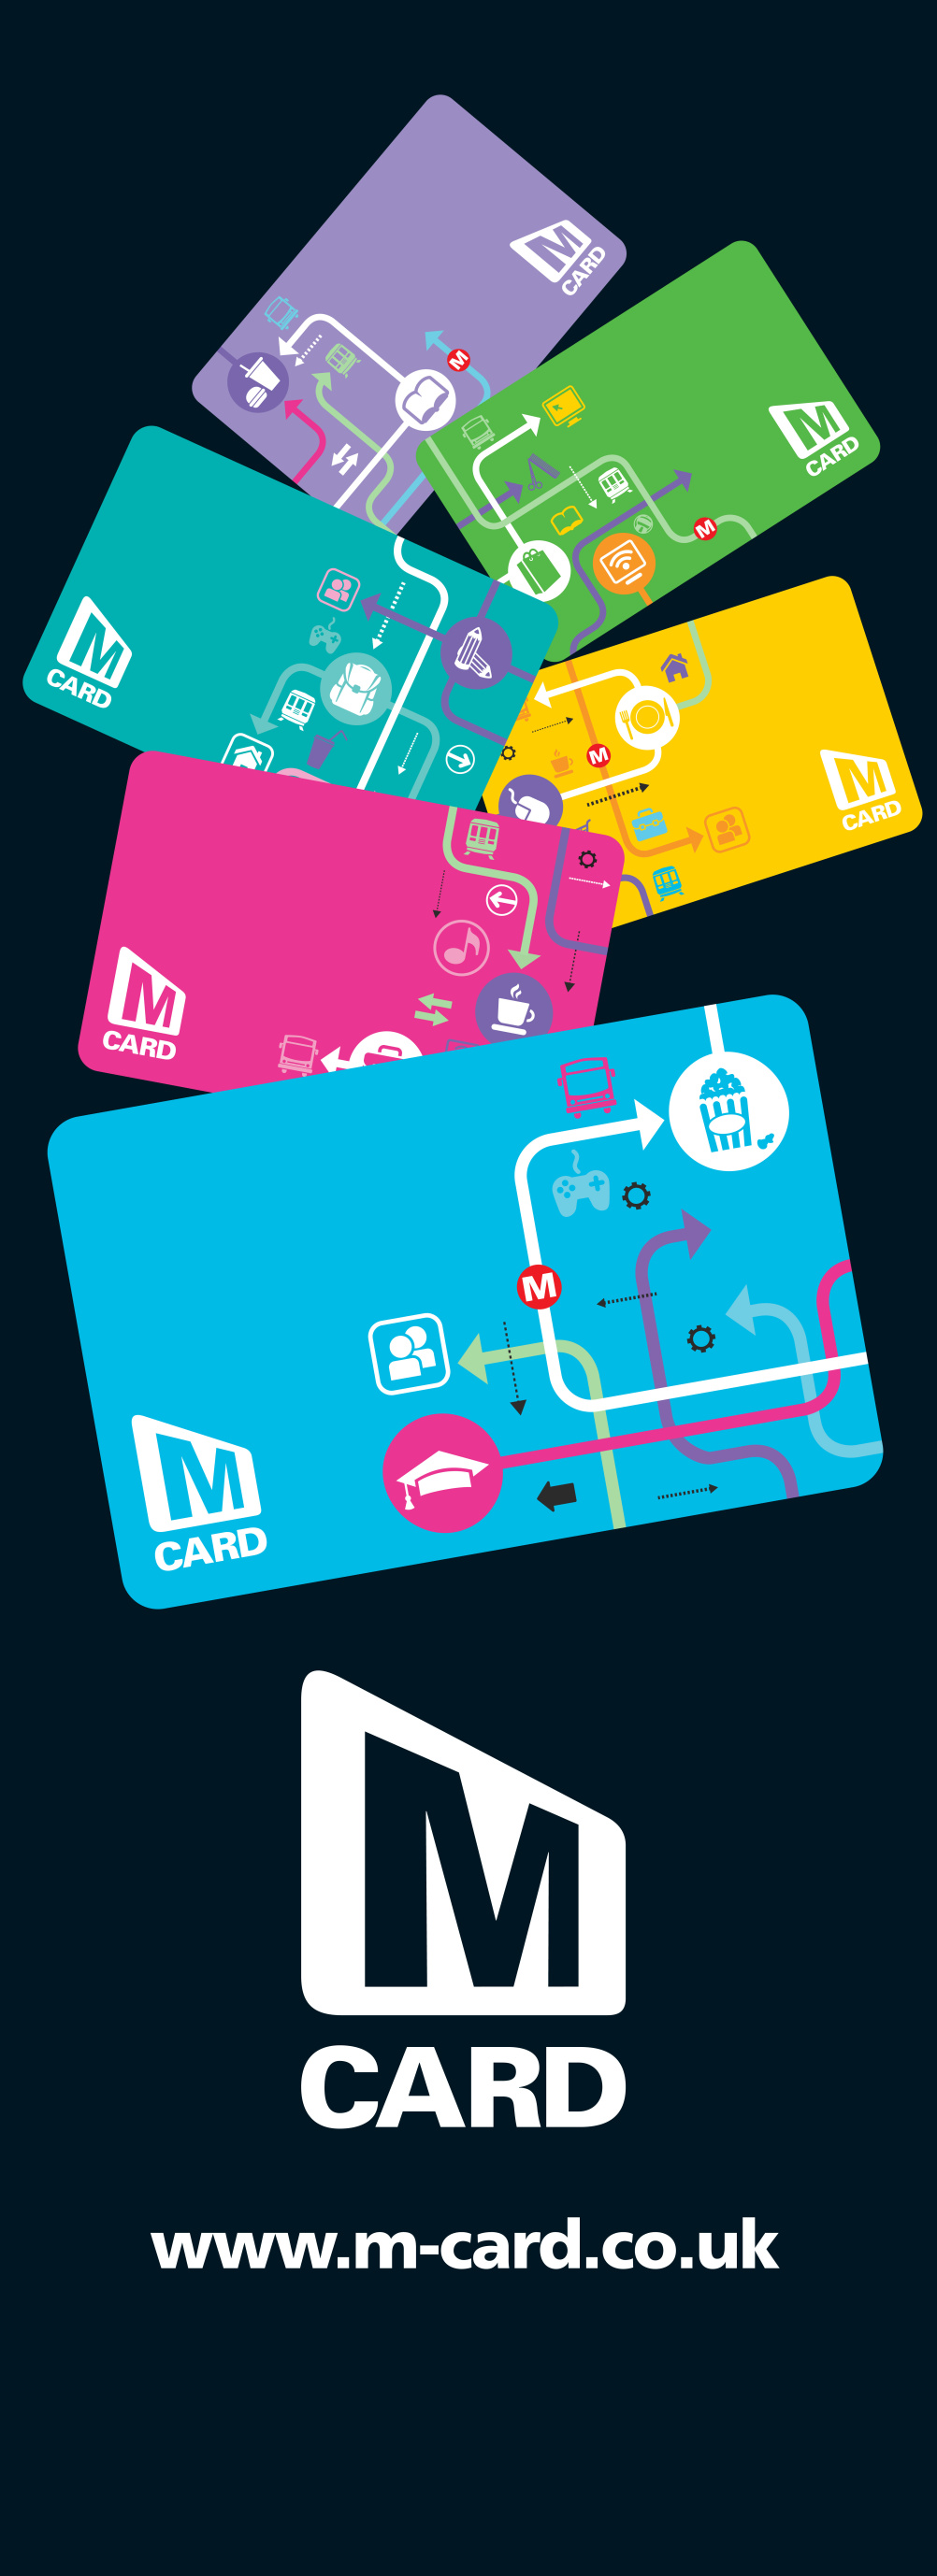 The range of MCards